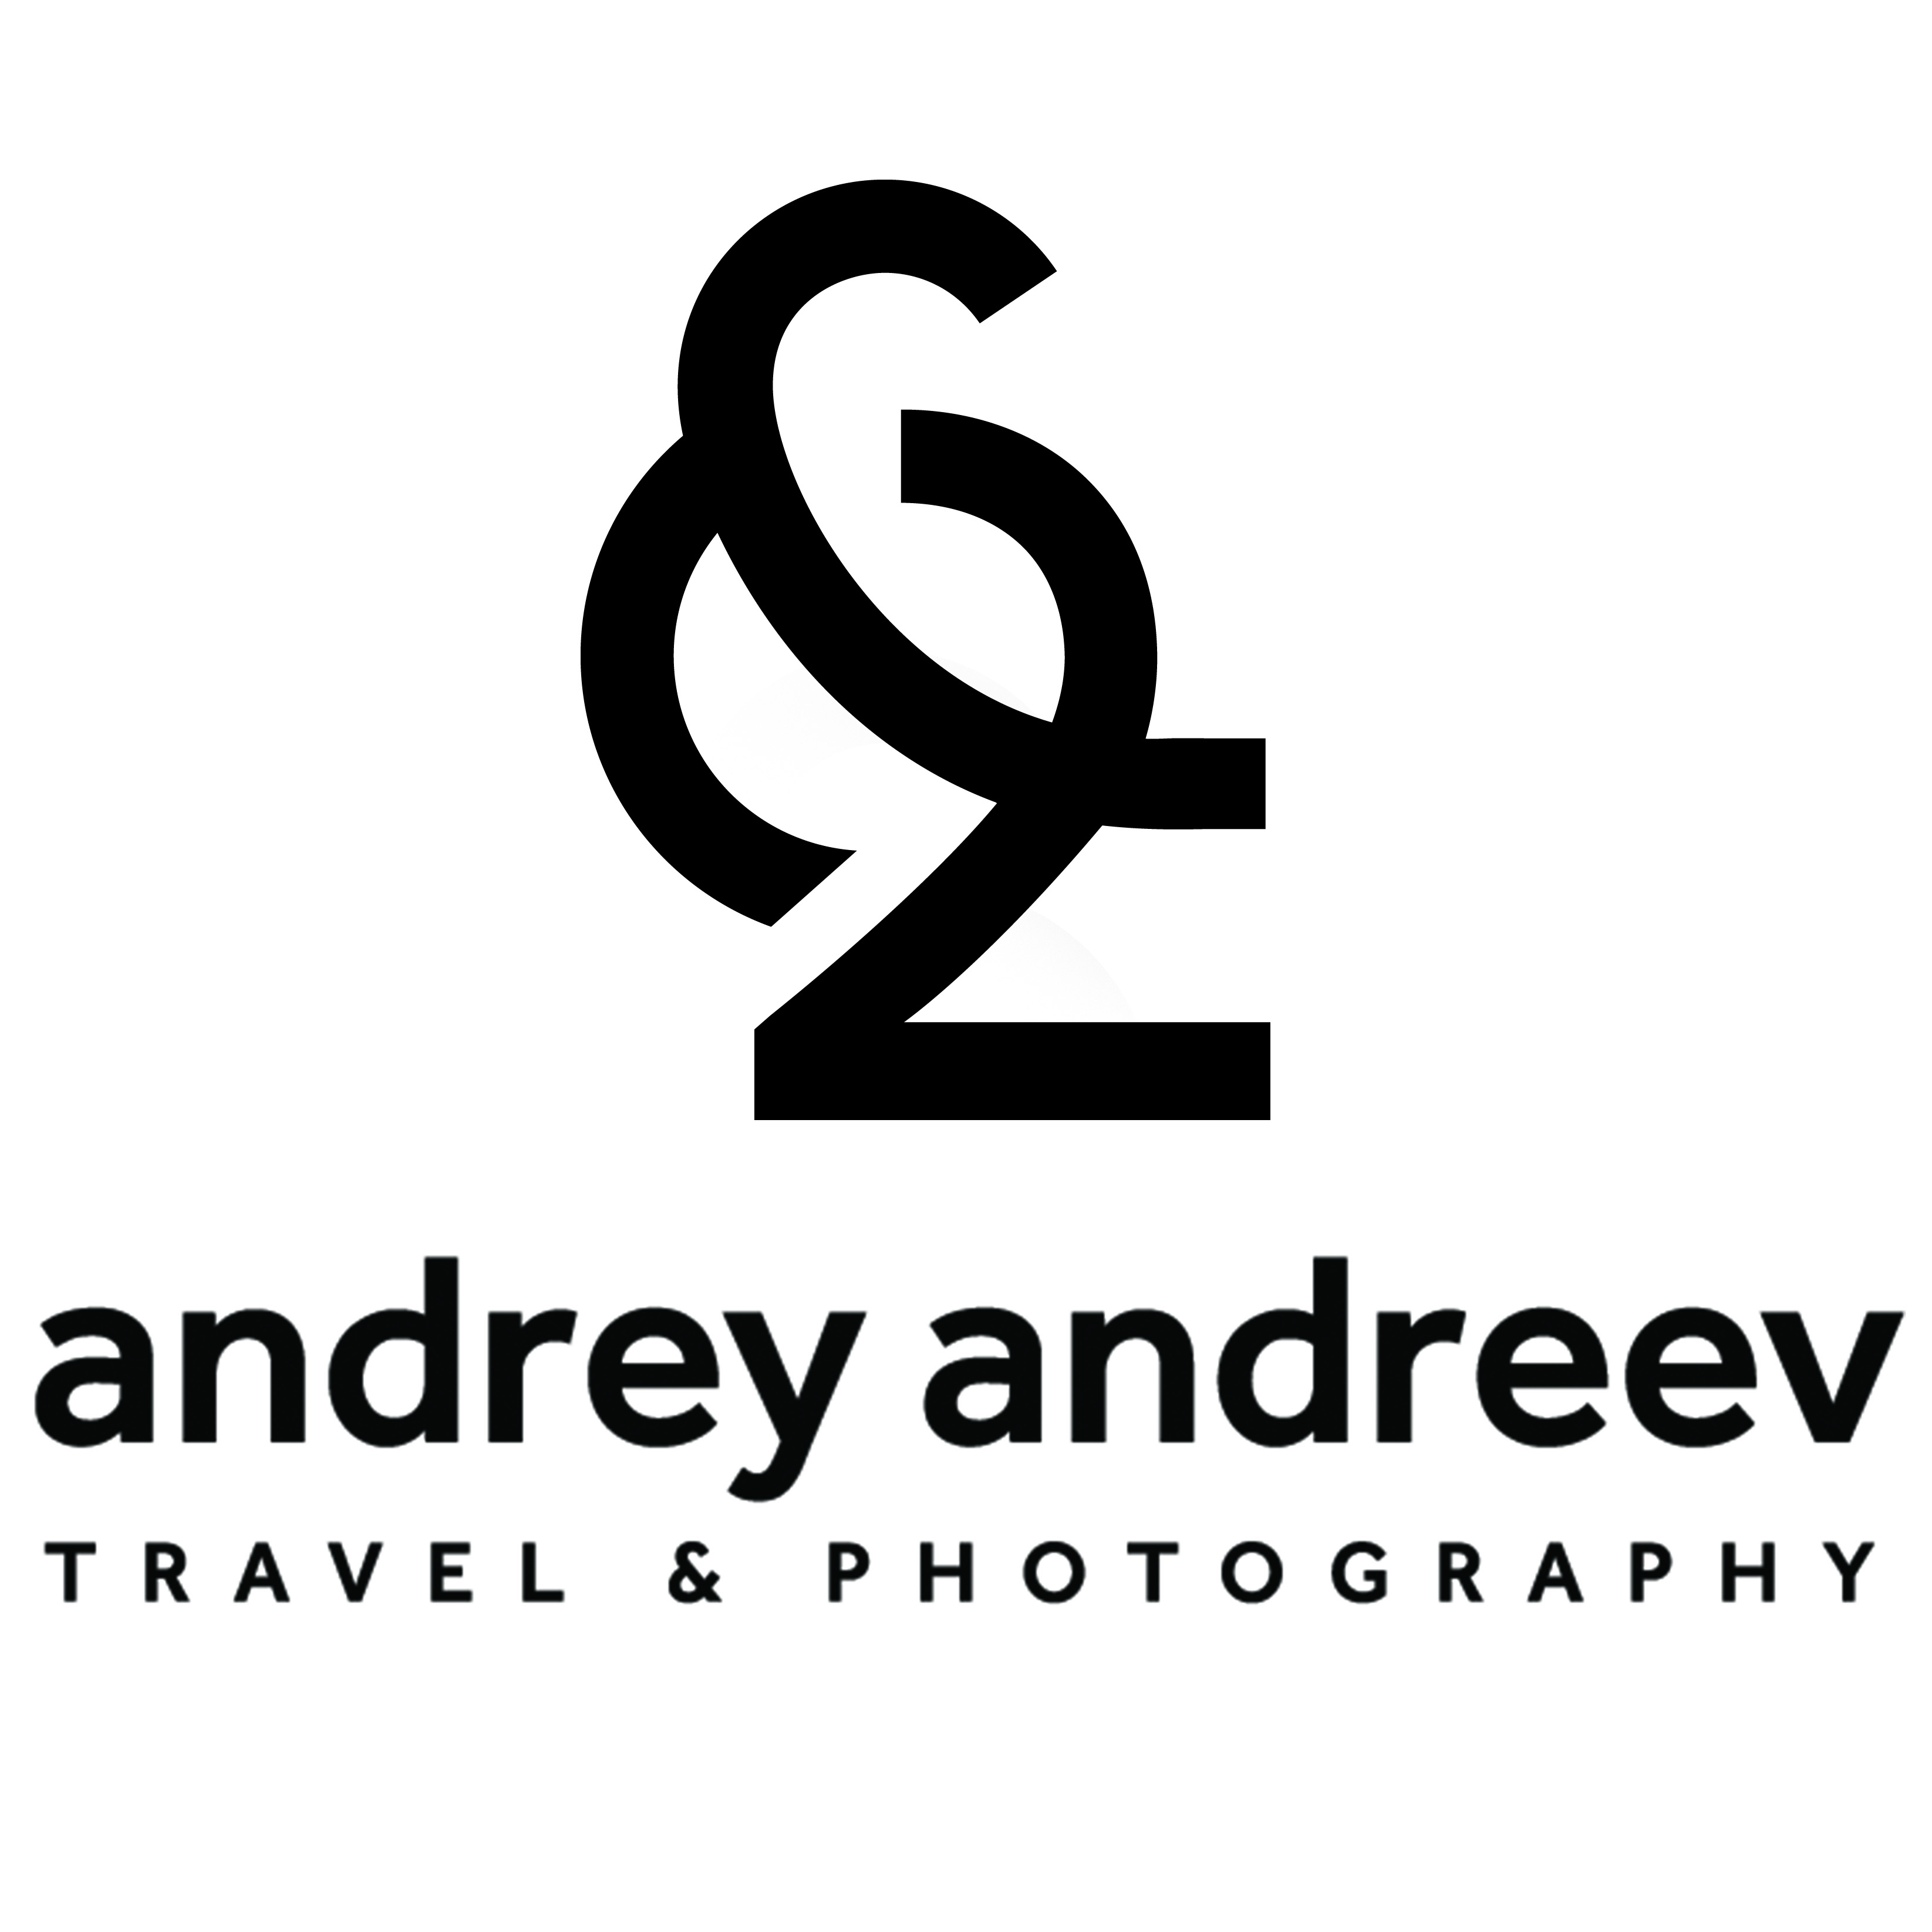 Andrey Andreev logo